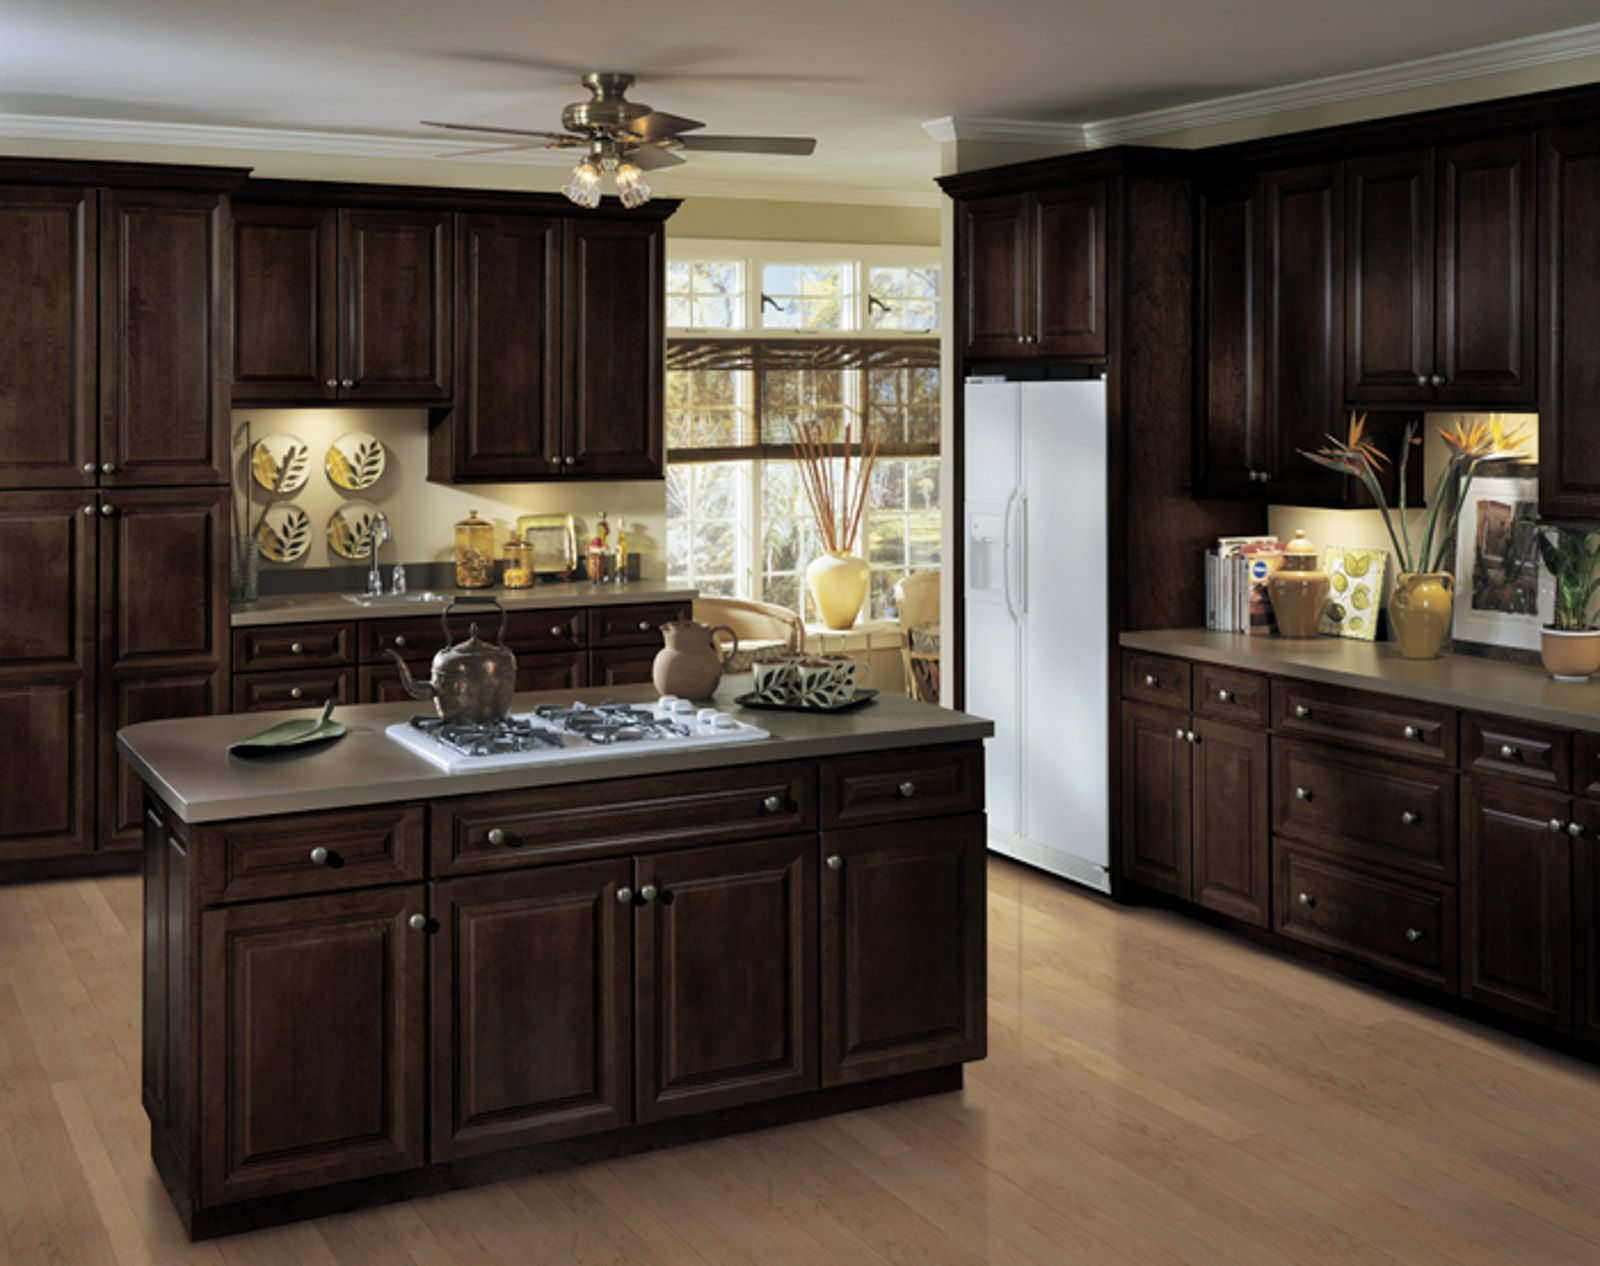 Inspiring Armstrong Cabinets Cabinetry For Your Home Decorating Ideas